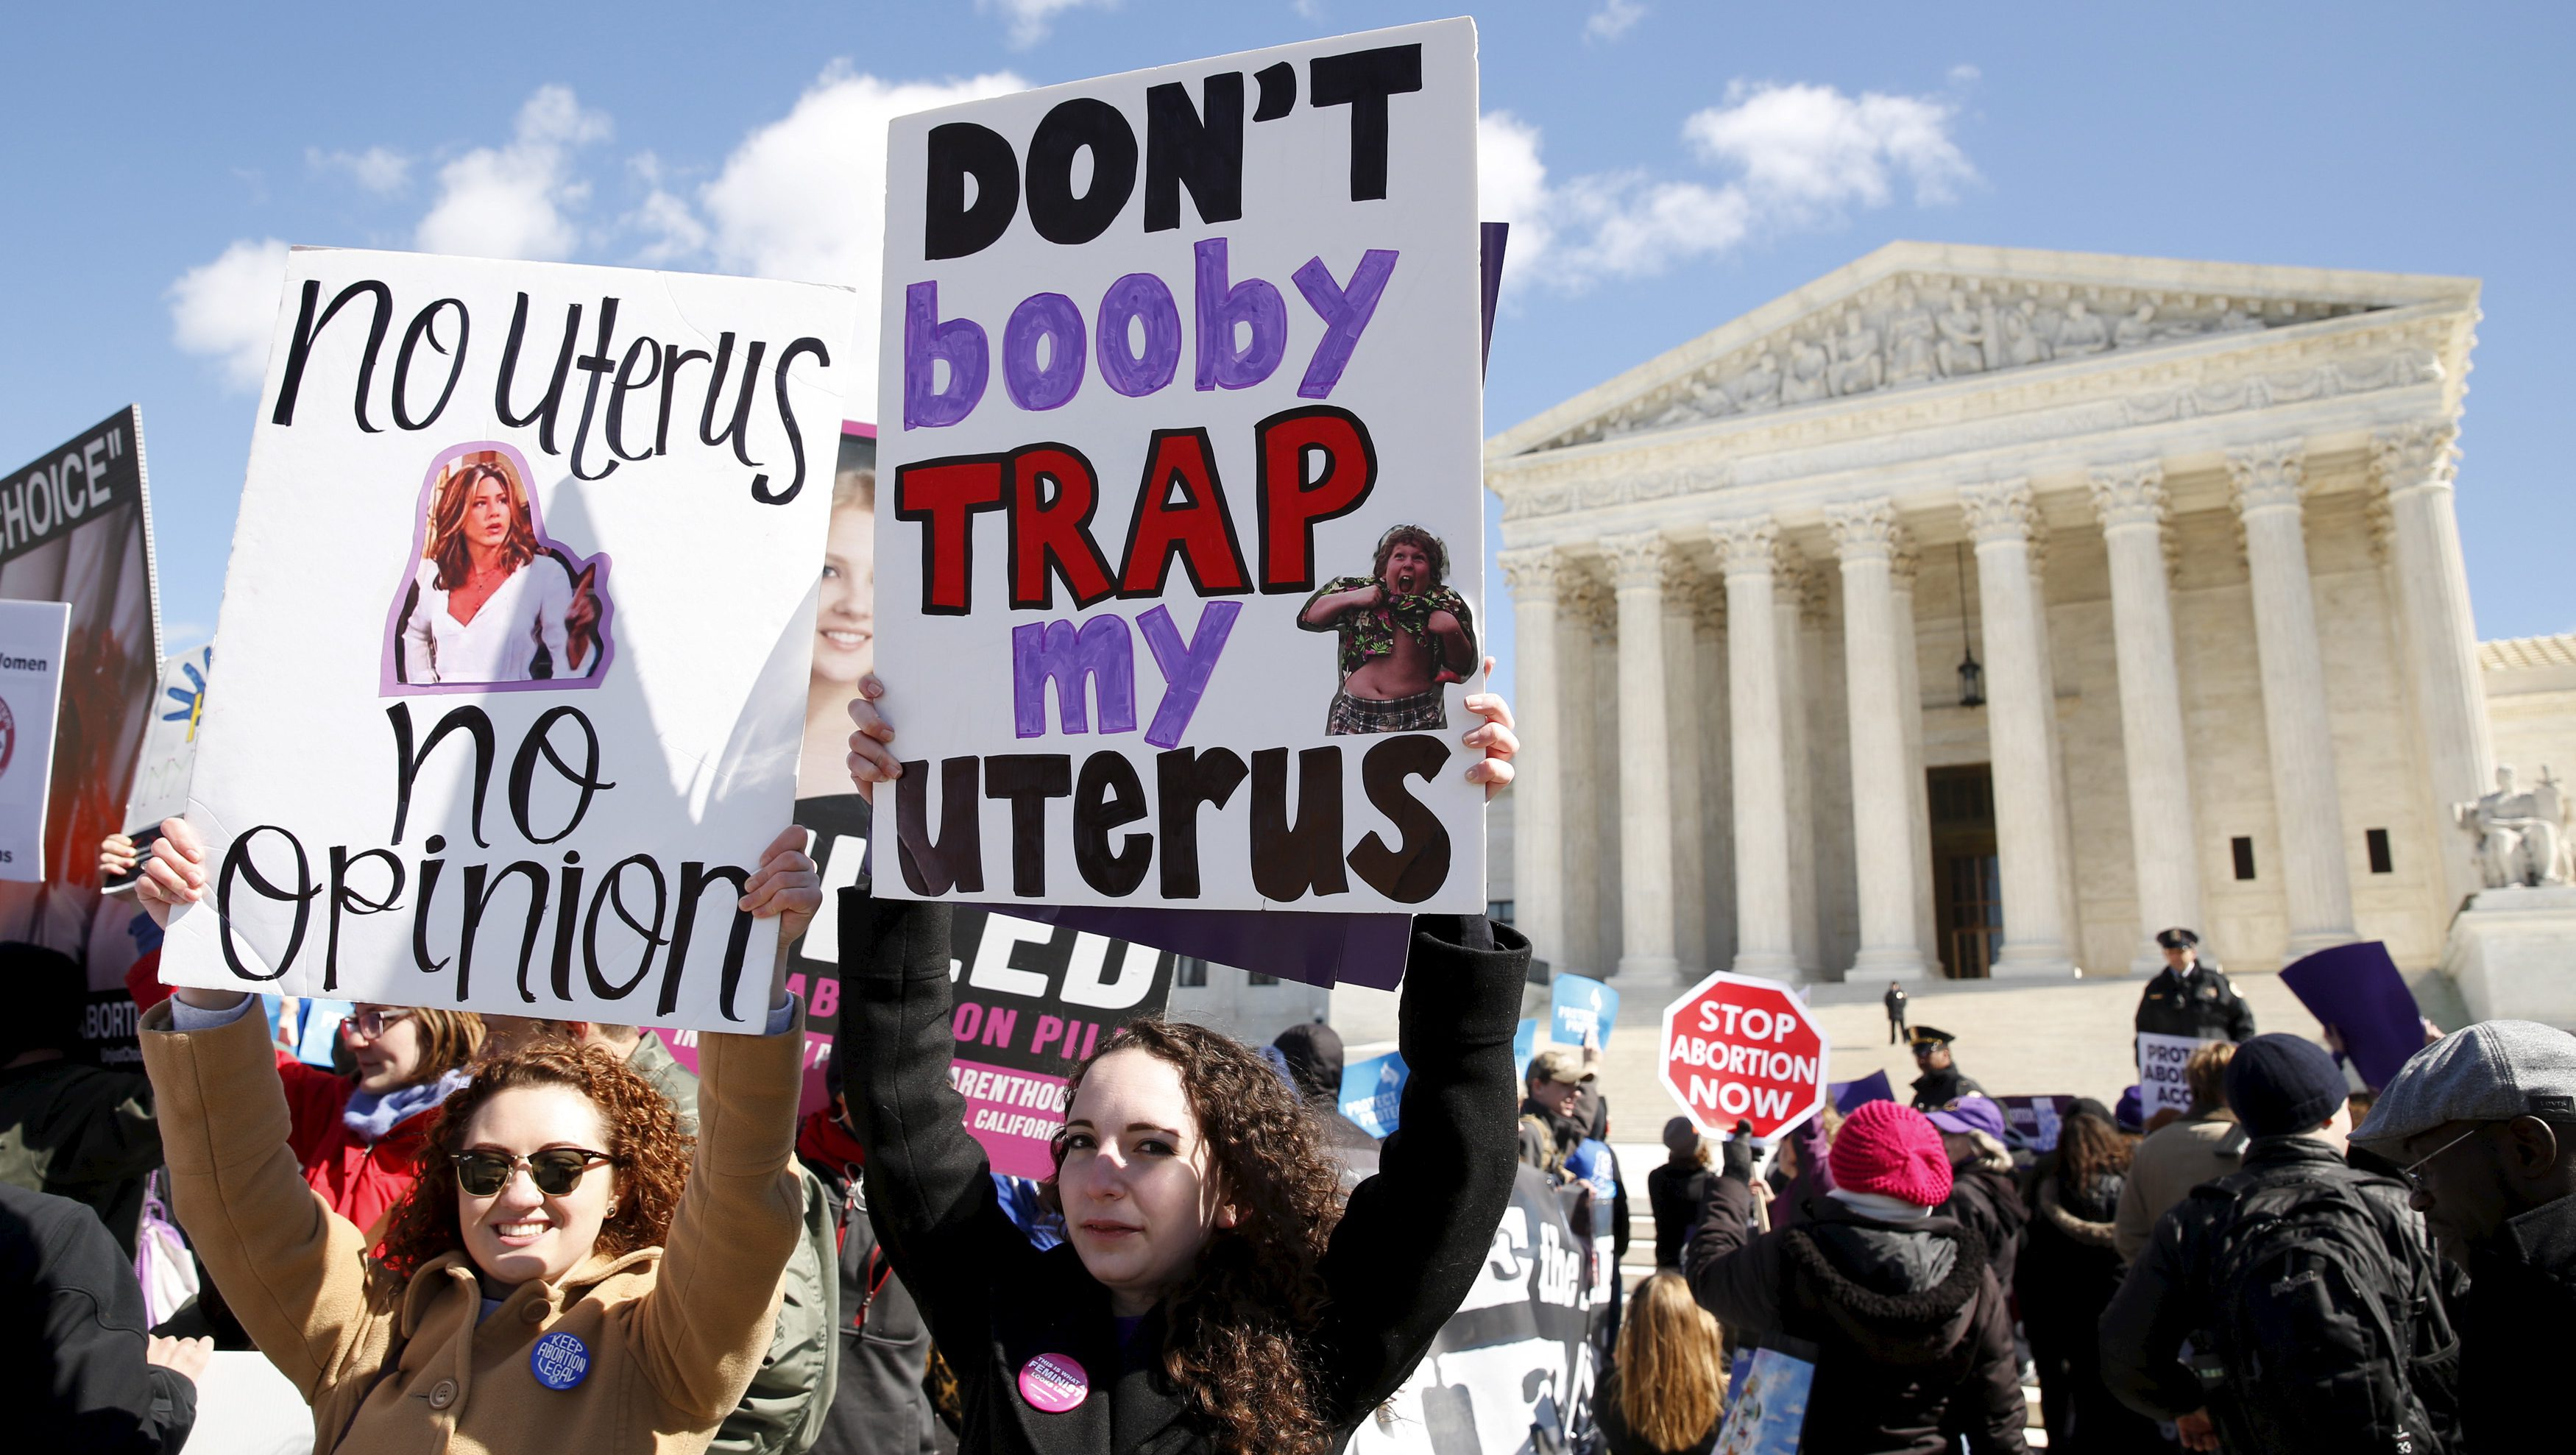 Protesters demonstrate in front of the U.S. Supreme Court on the morning that the court took up a major abortion case focusing on whether a Texas law that imposes strict regulations on abortion doctors and clinic buildings interferes with the constitutional right of a woman to end her pregnancy in Washington March 2, 2016.  REUTERS/Kevin Lamarque  - RTS8ZI2